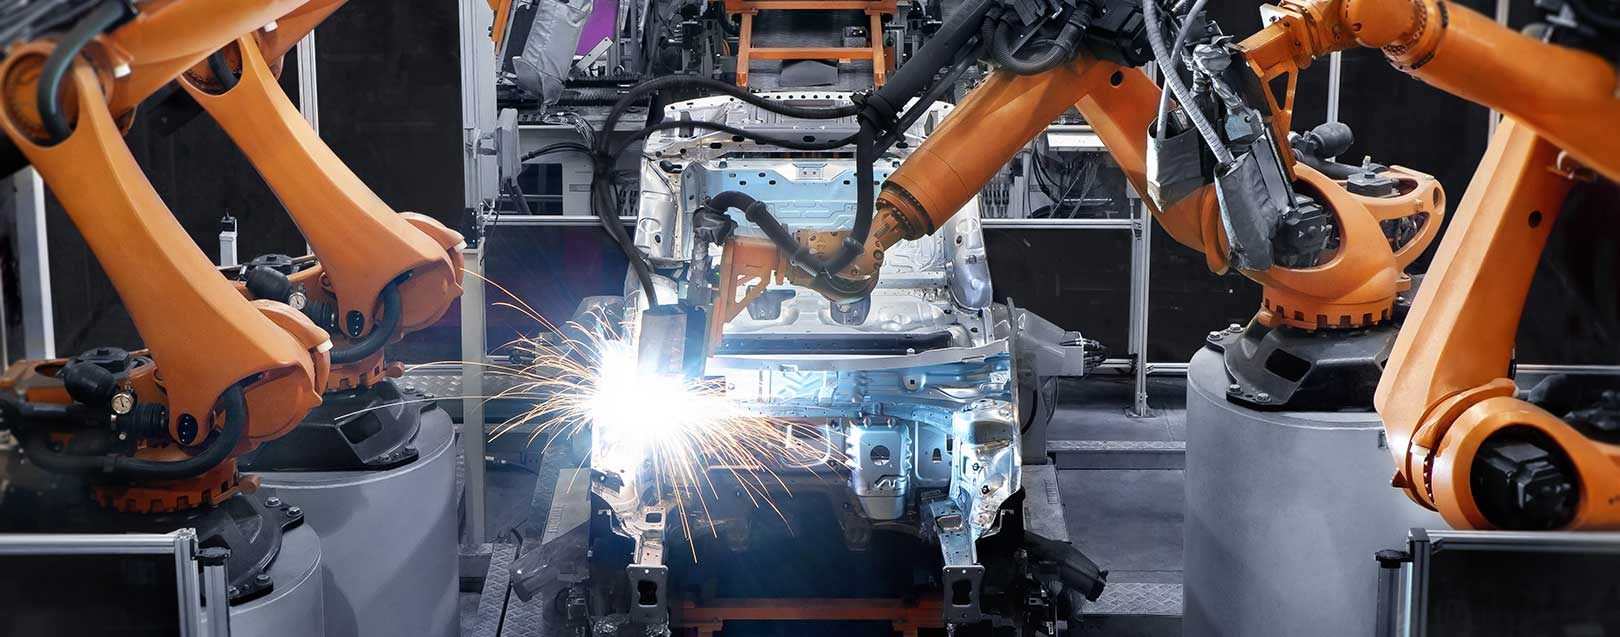 Manufacturing sector witnesses growth for the 4th straight month